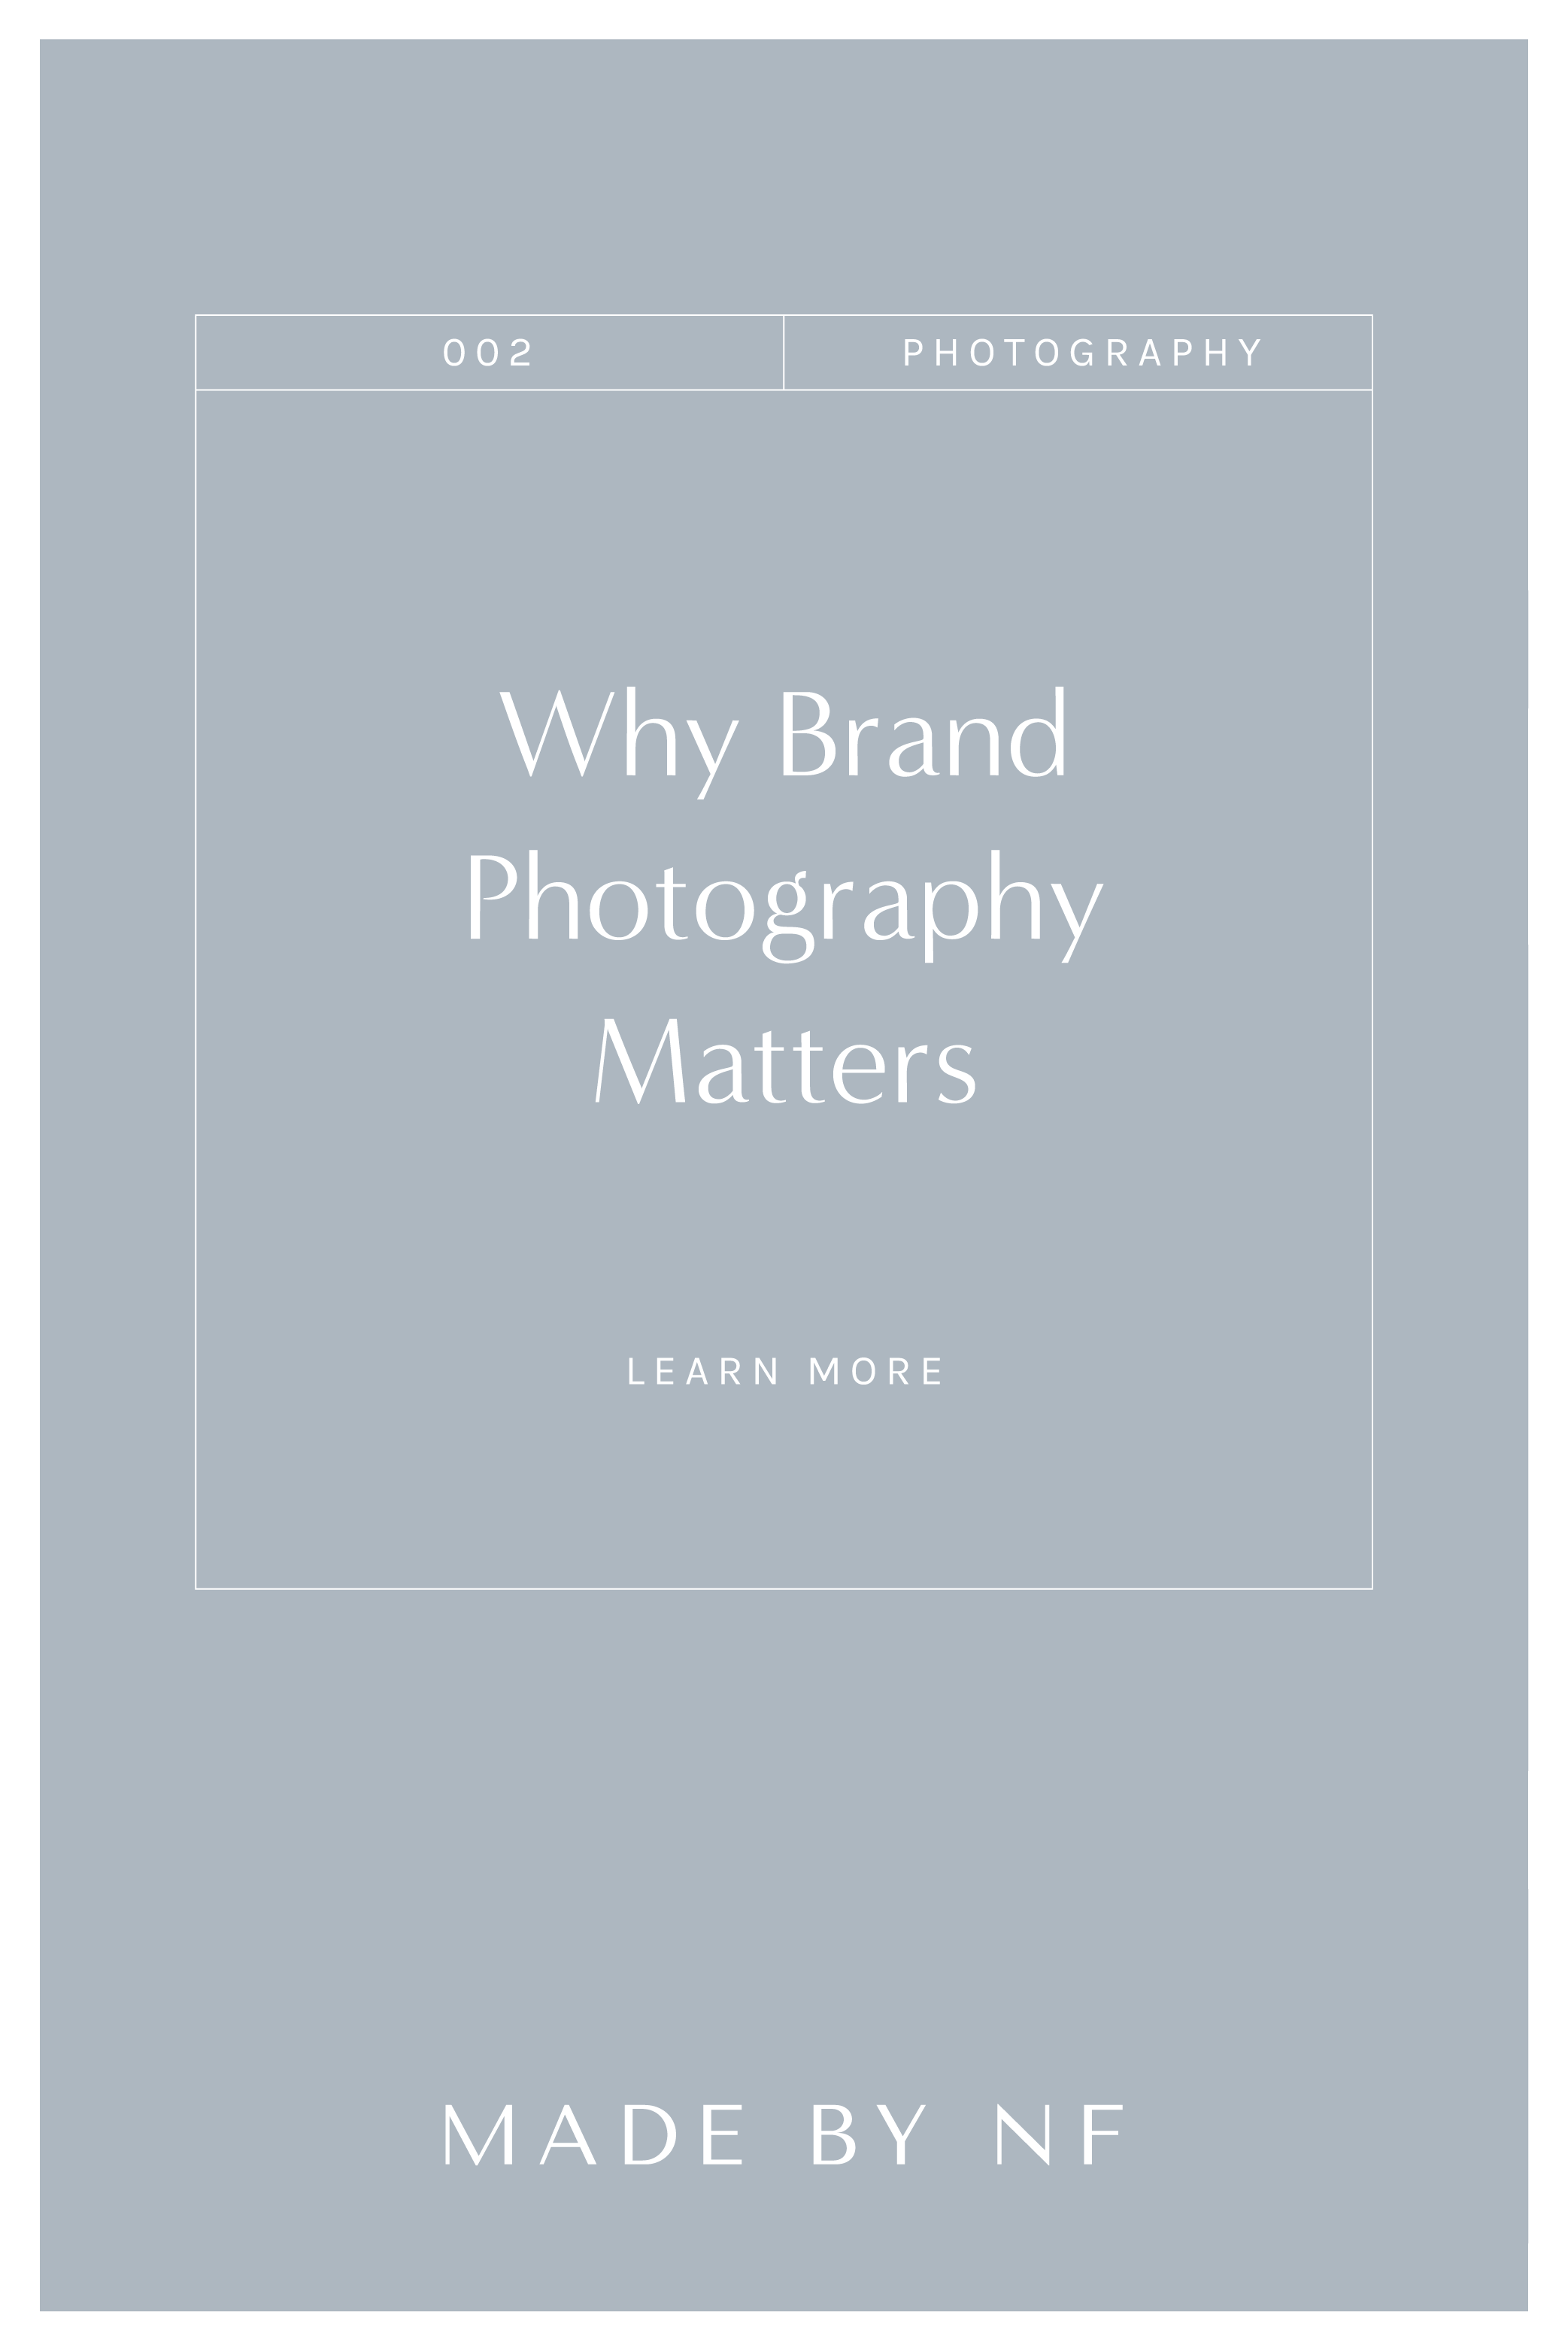 Brand Photography_3.png